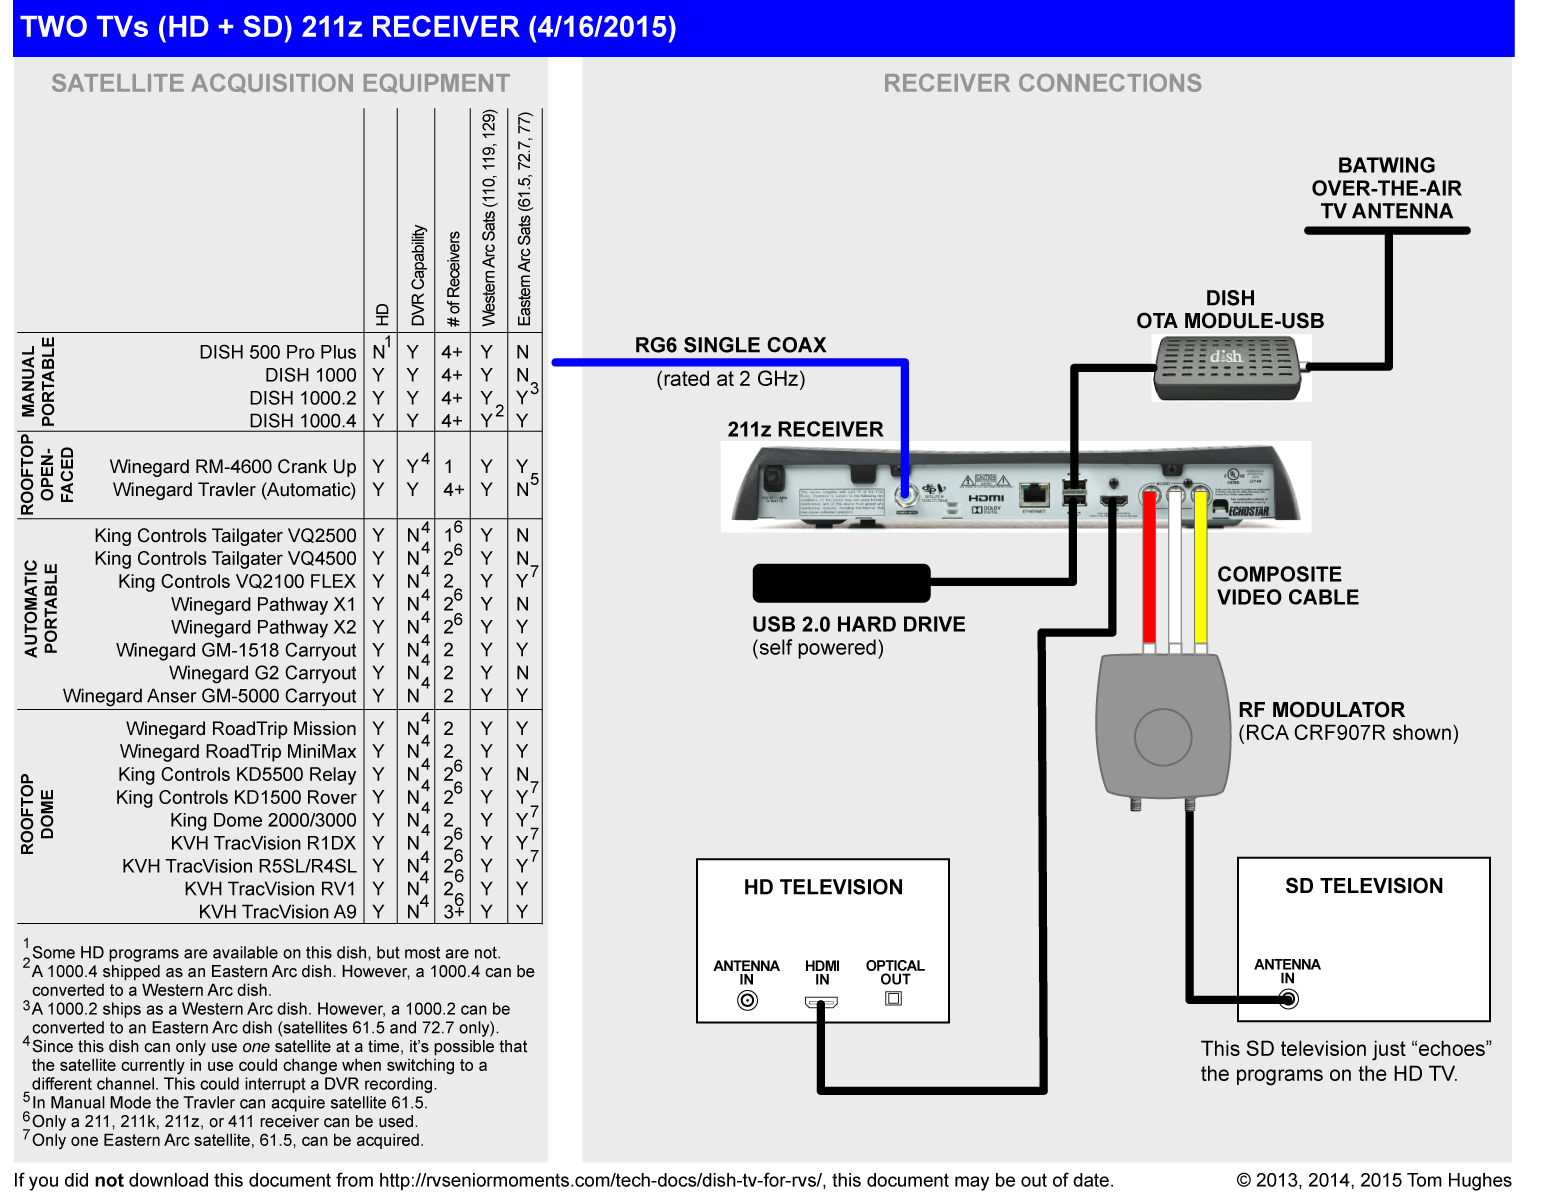 Dish 722 Receiver Wiring Diagram For 2 Televisions | Wiring Diagram - How To Connect 2 Tvs To One Dish Network Receiver Wiring Diagram